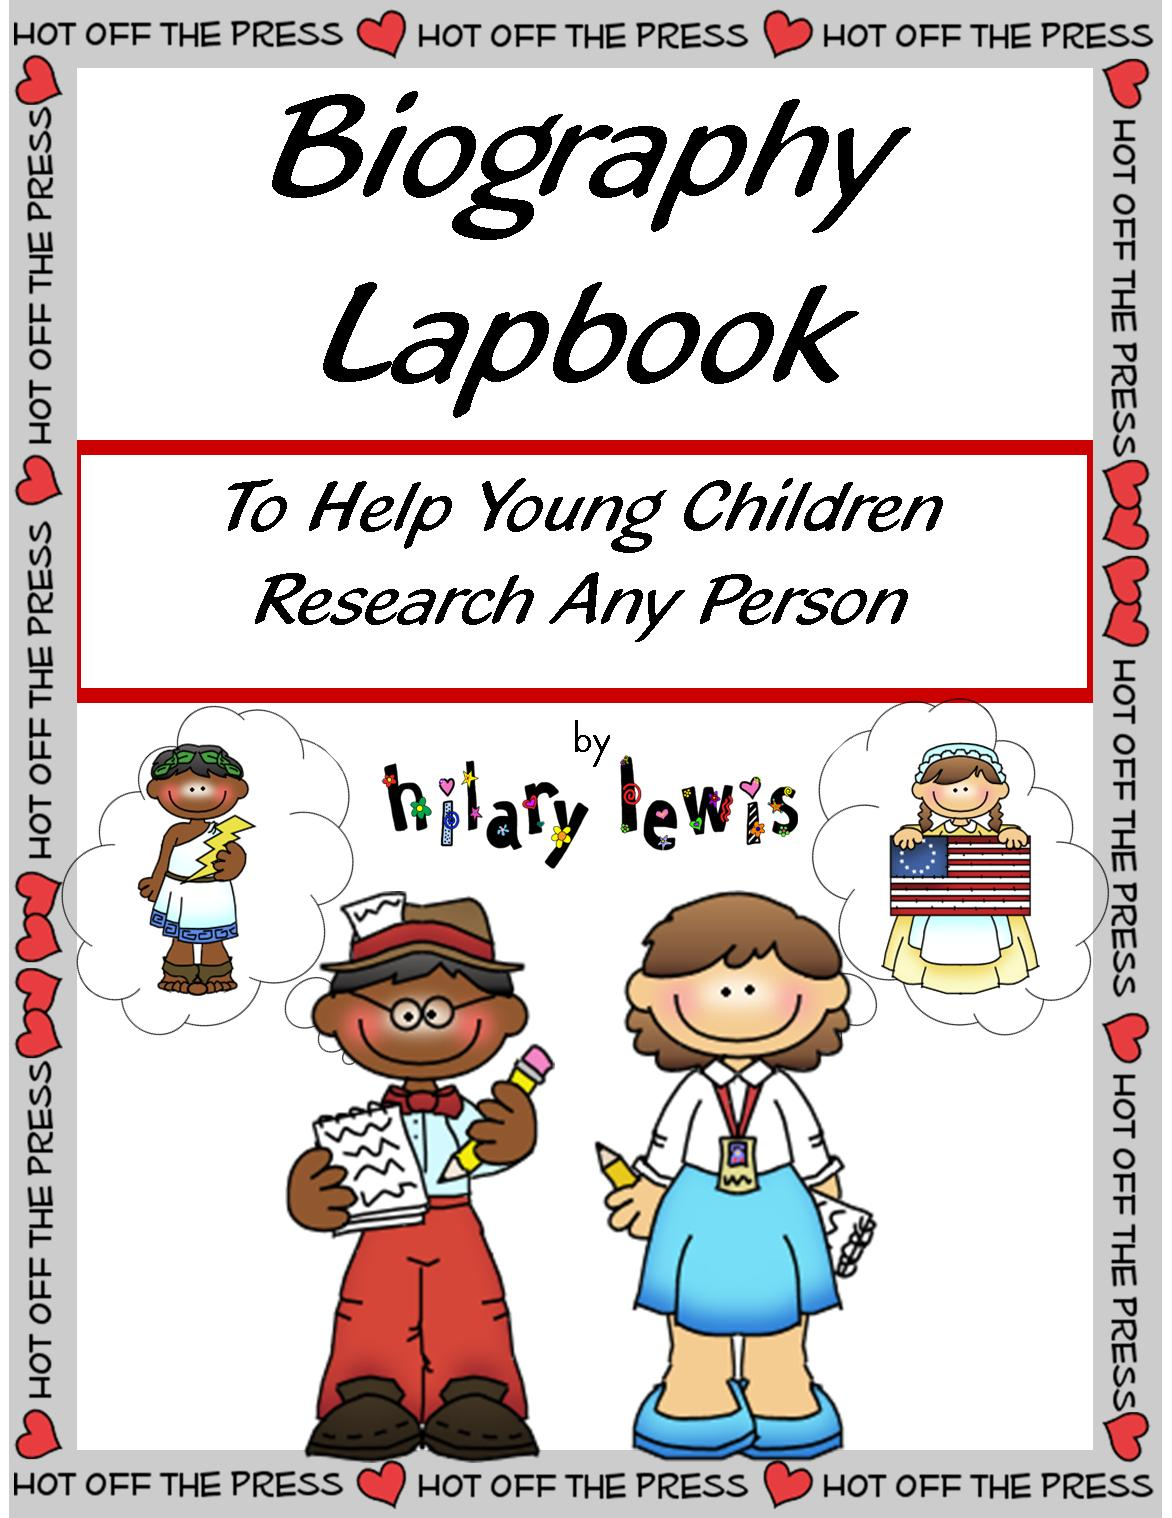 Biography Lapbook to Research Any Person with an Emphasis on Character Traits